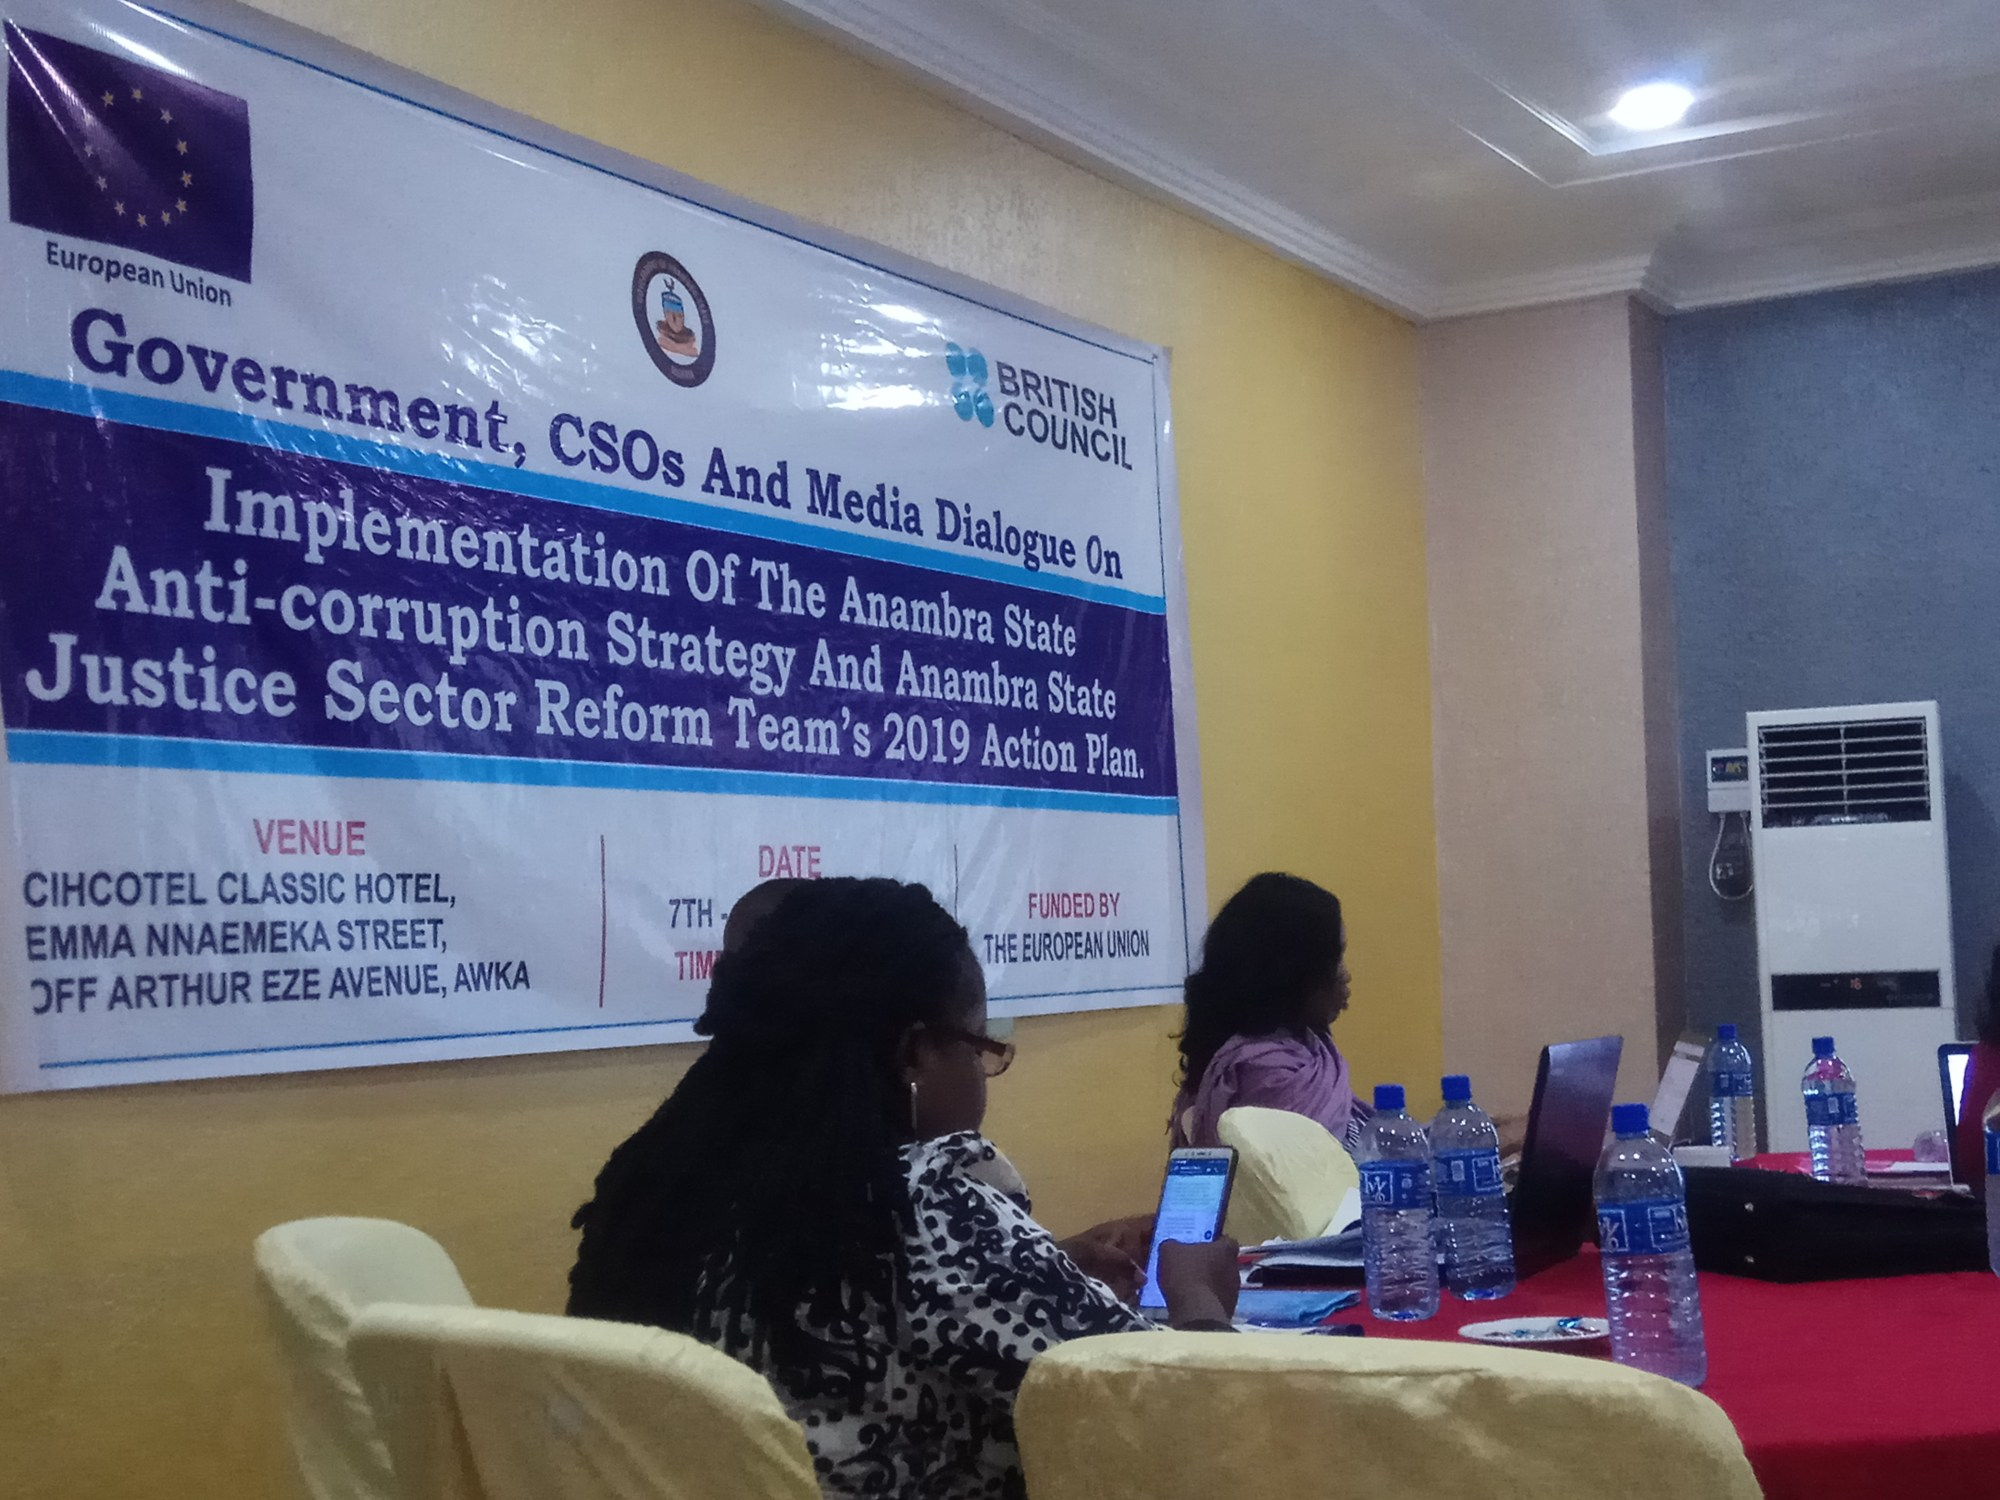 Government, CSOs, Media Dialogue on Anti-corruption Strategy